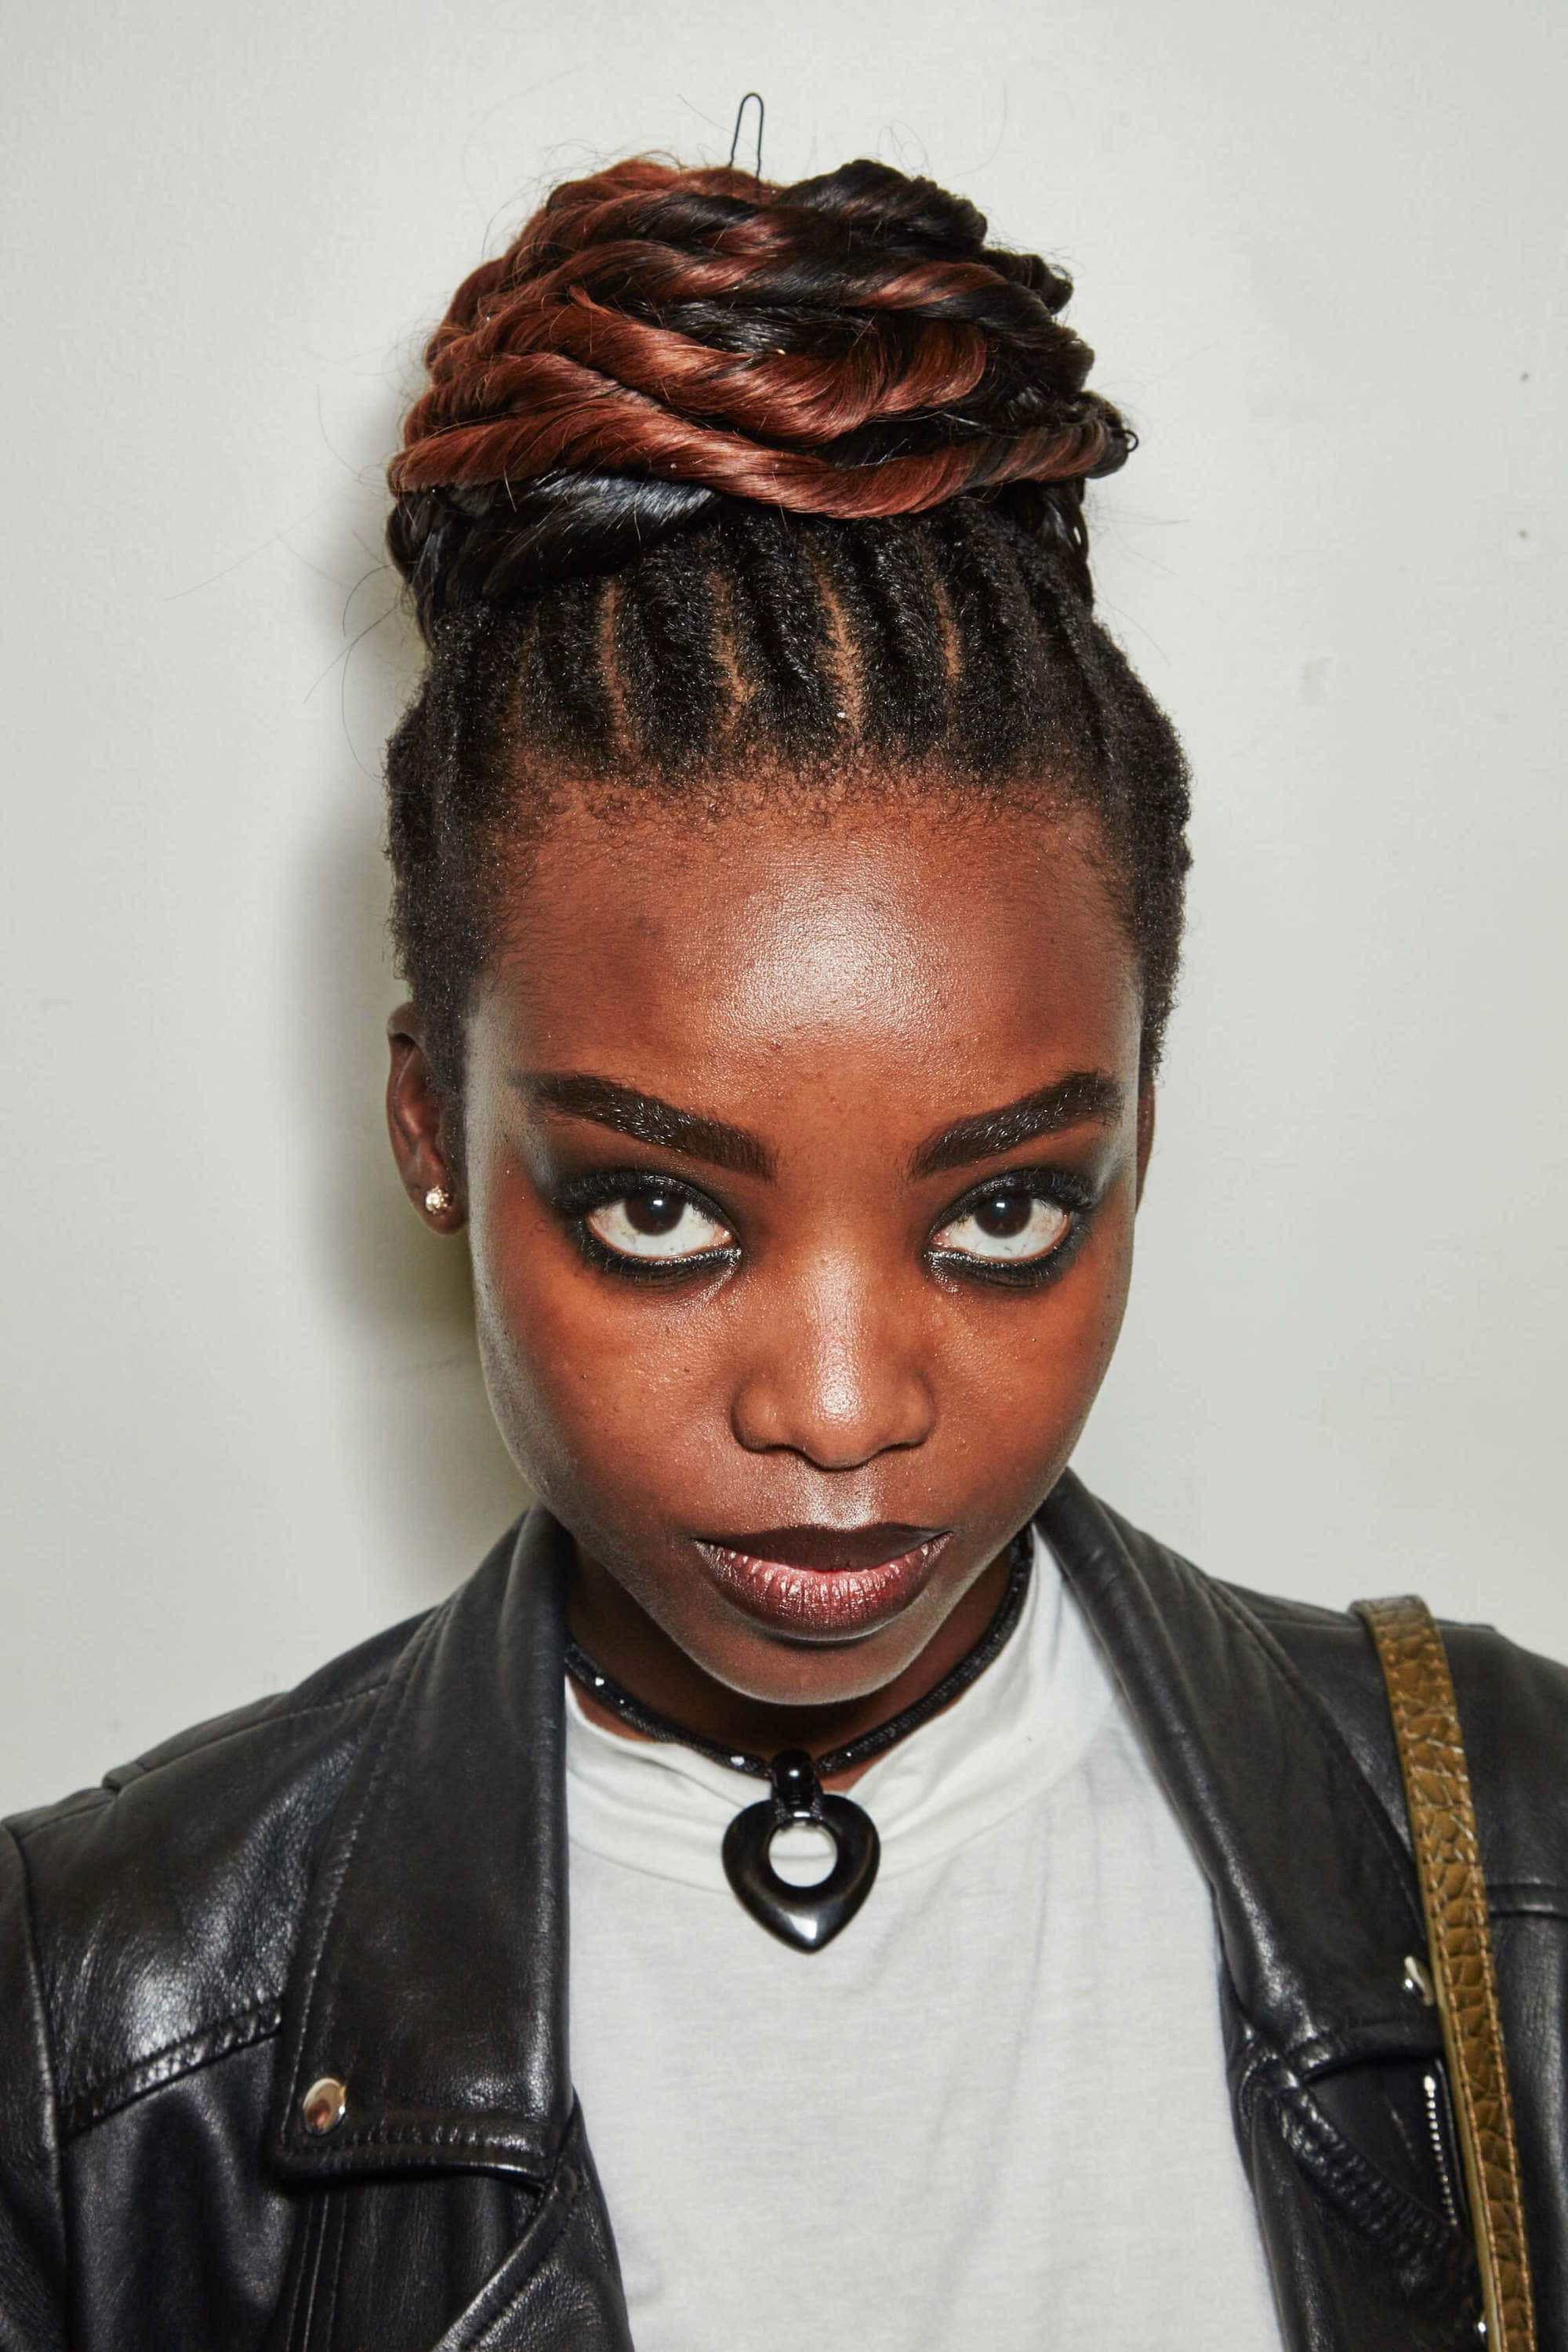 Best ideas about Black Braided Updo Hairstyles . Save or Pin 6 Black Braided Hairstyles Perfect for Natural Textured Women Now.